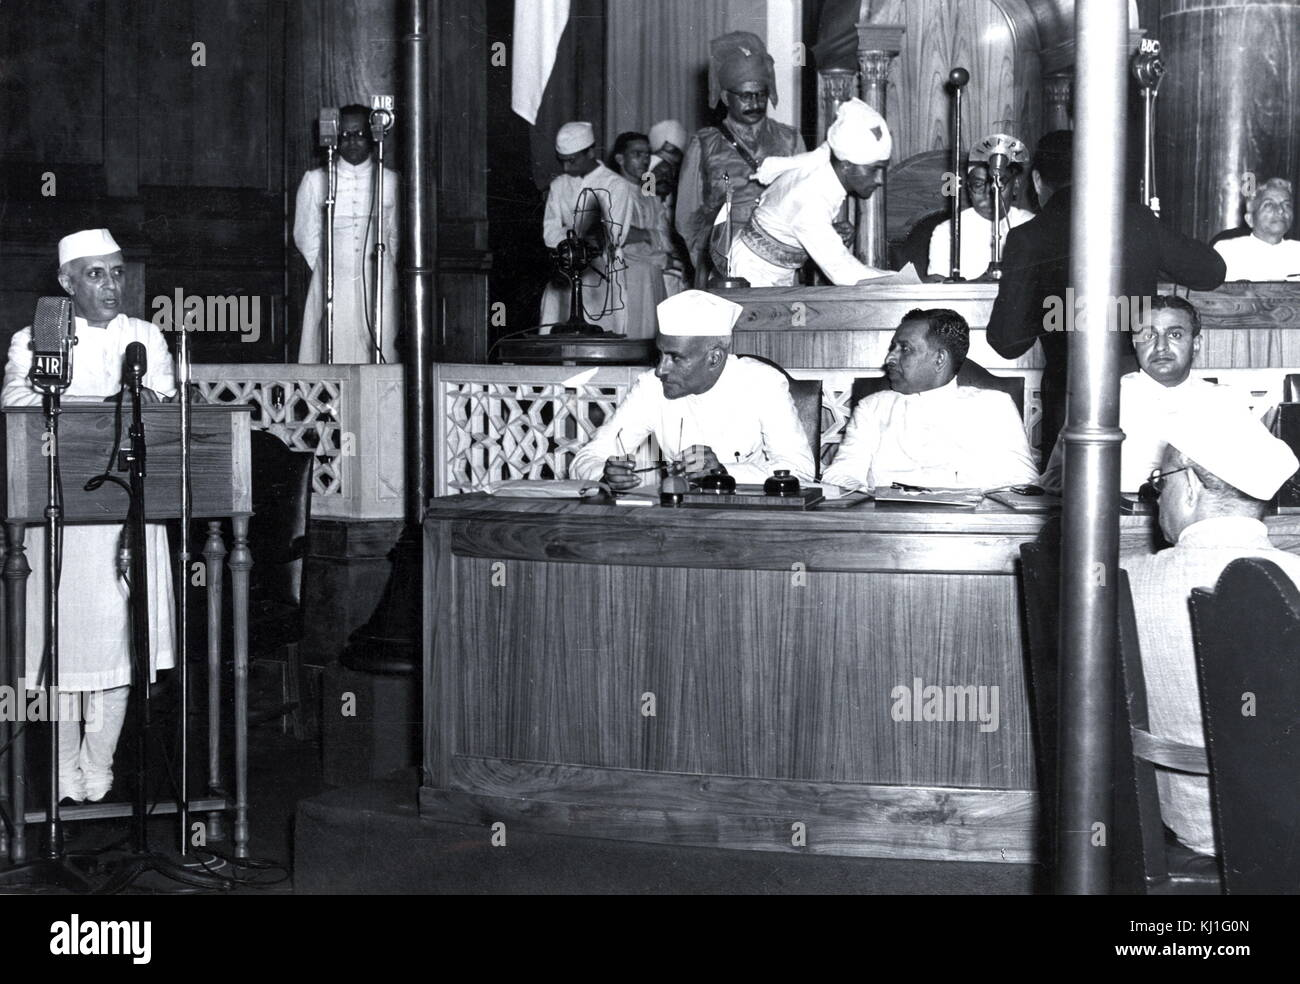 Jawaharlal Nehru at the declaration of Indian Independence, 15 August 1947. Nehru (1889 -1964) was a leader of Indian - Stock Image